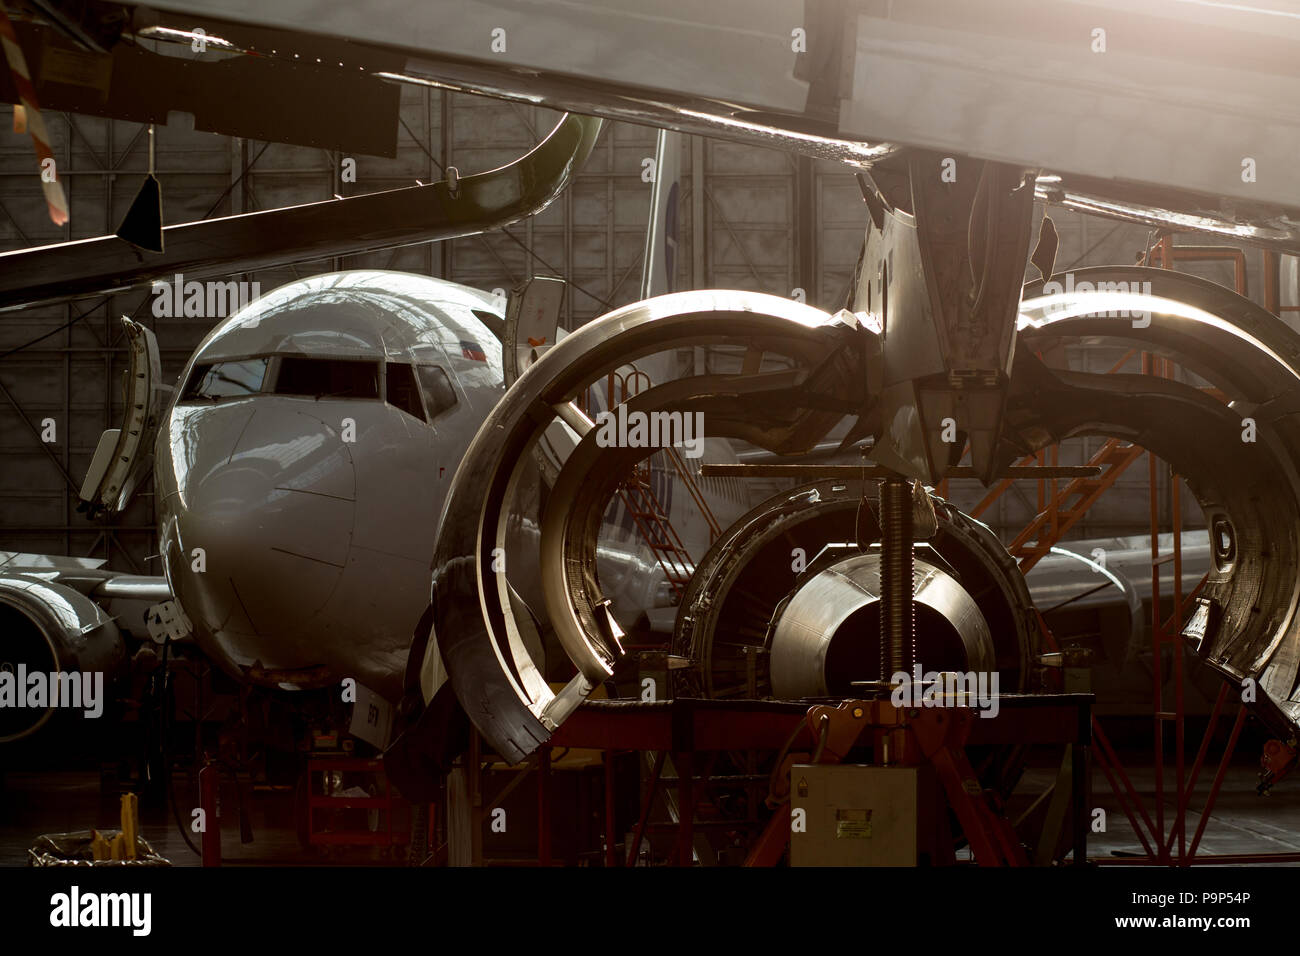 Civil jet airplanes pictured inside the hangar while undergoing various checks at the S7 Engineering facility at Domodedovo airport, Moscow Region, Ru - Stock Image